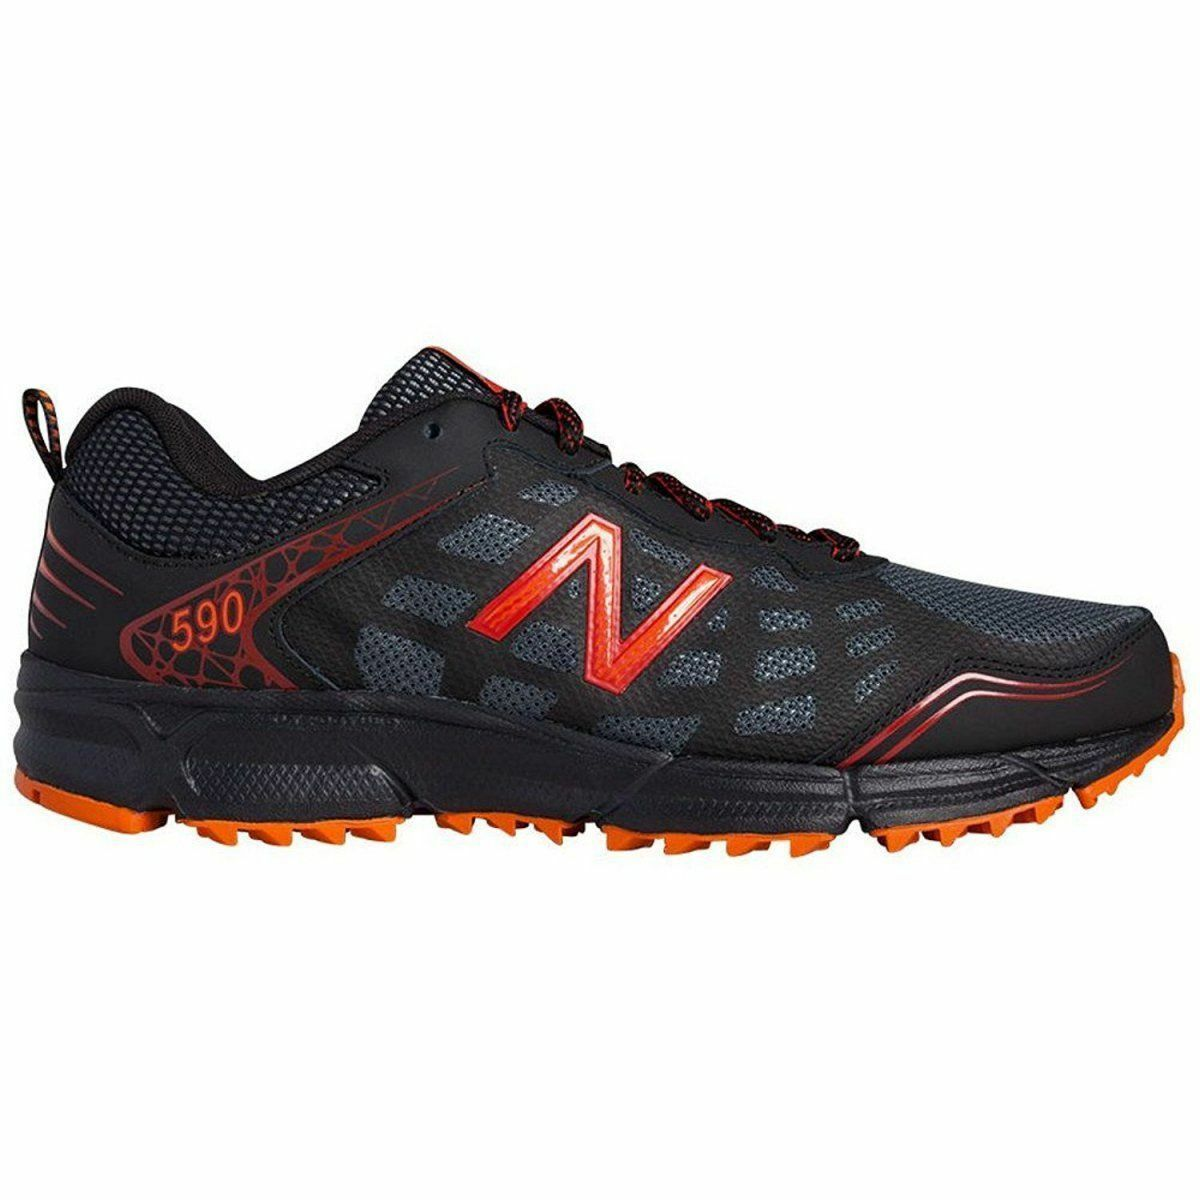 New Balance MT590BB1 Running  men's shoes Black orange NWB